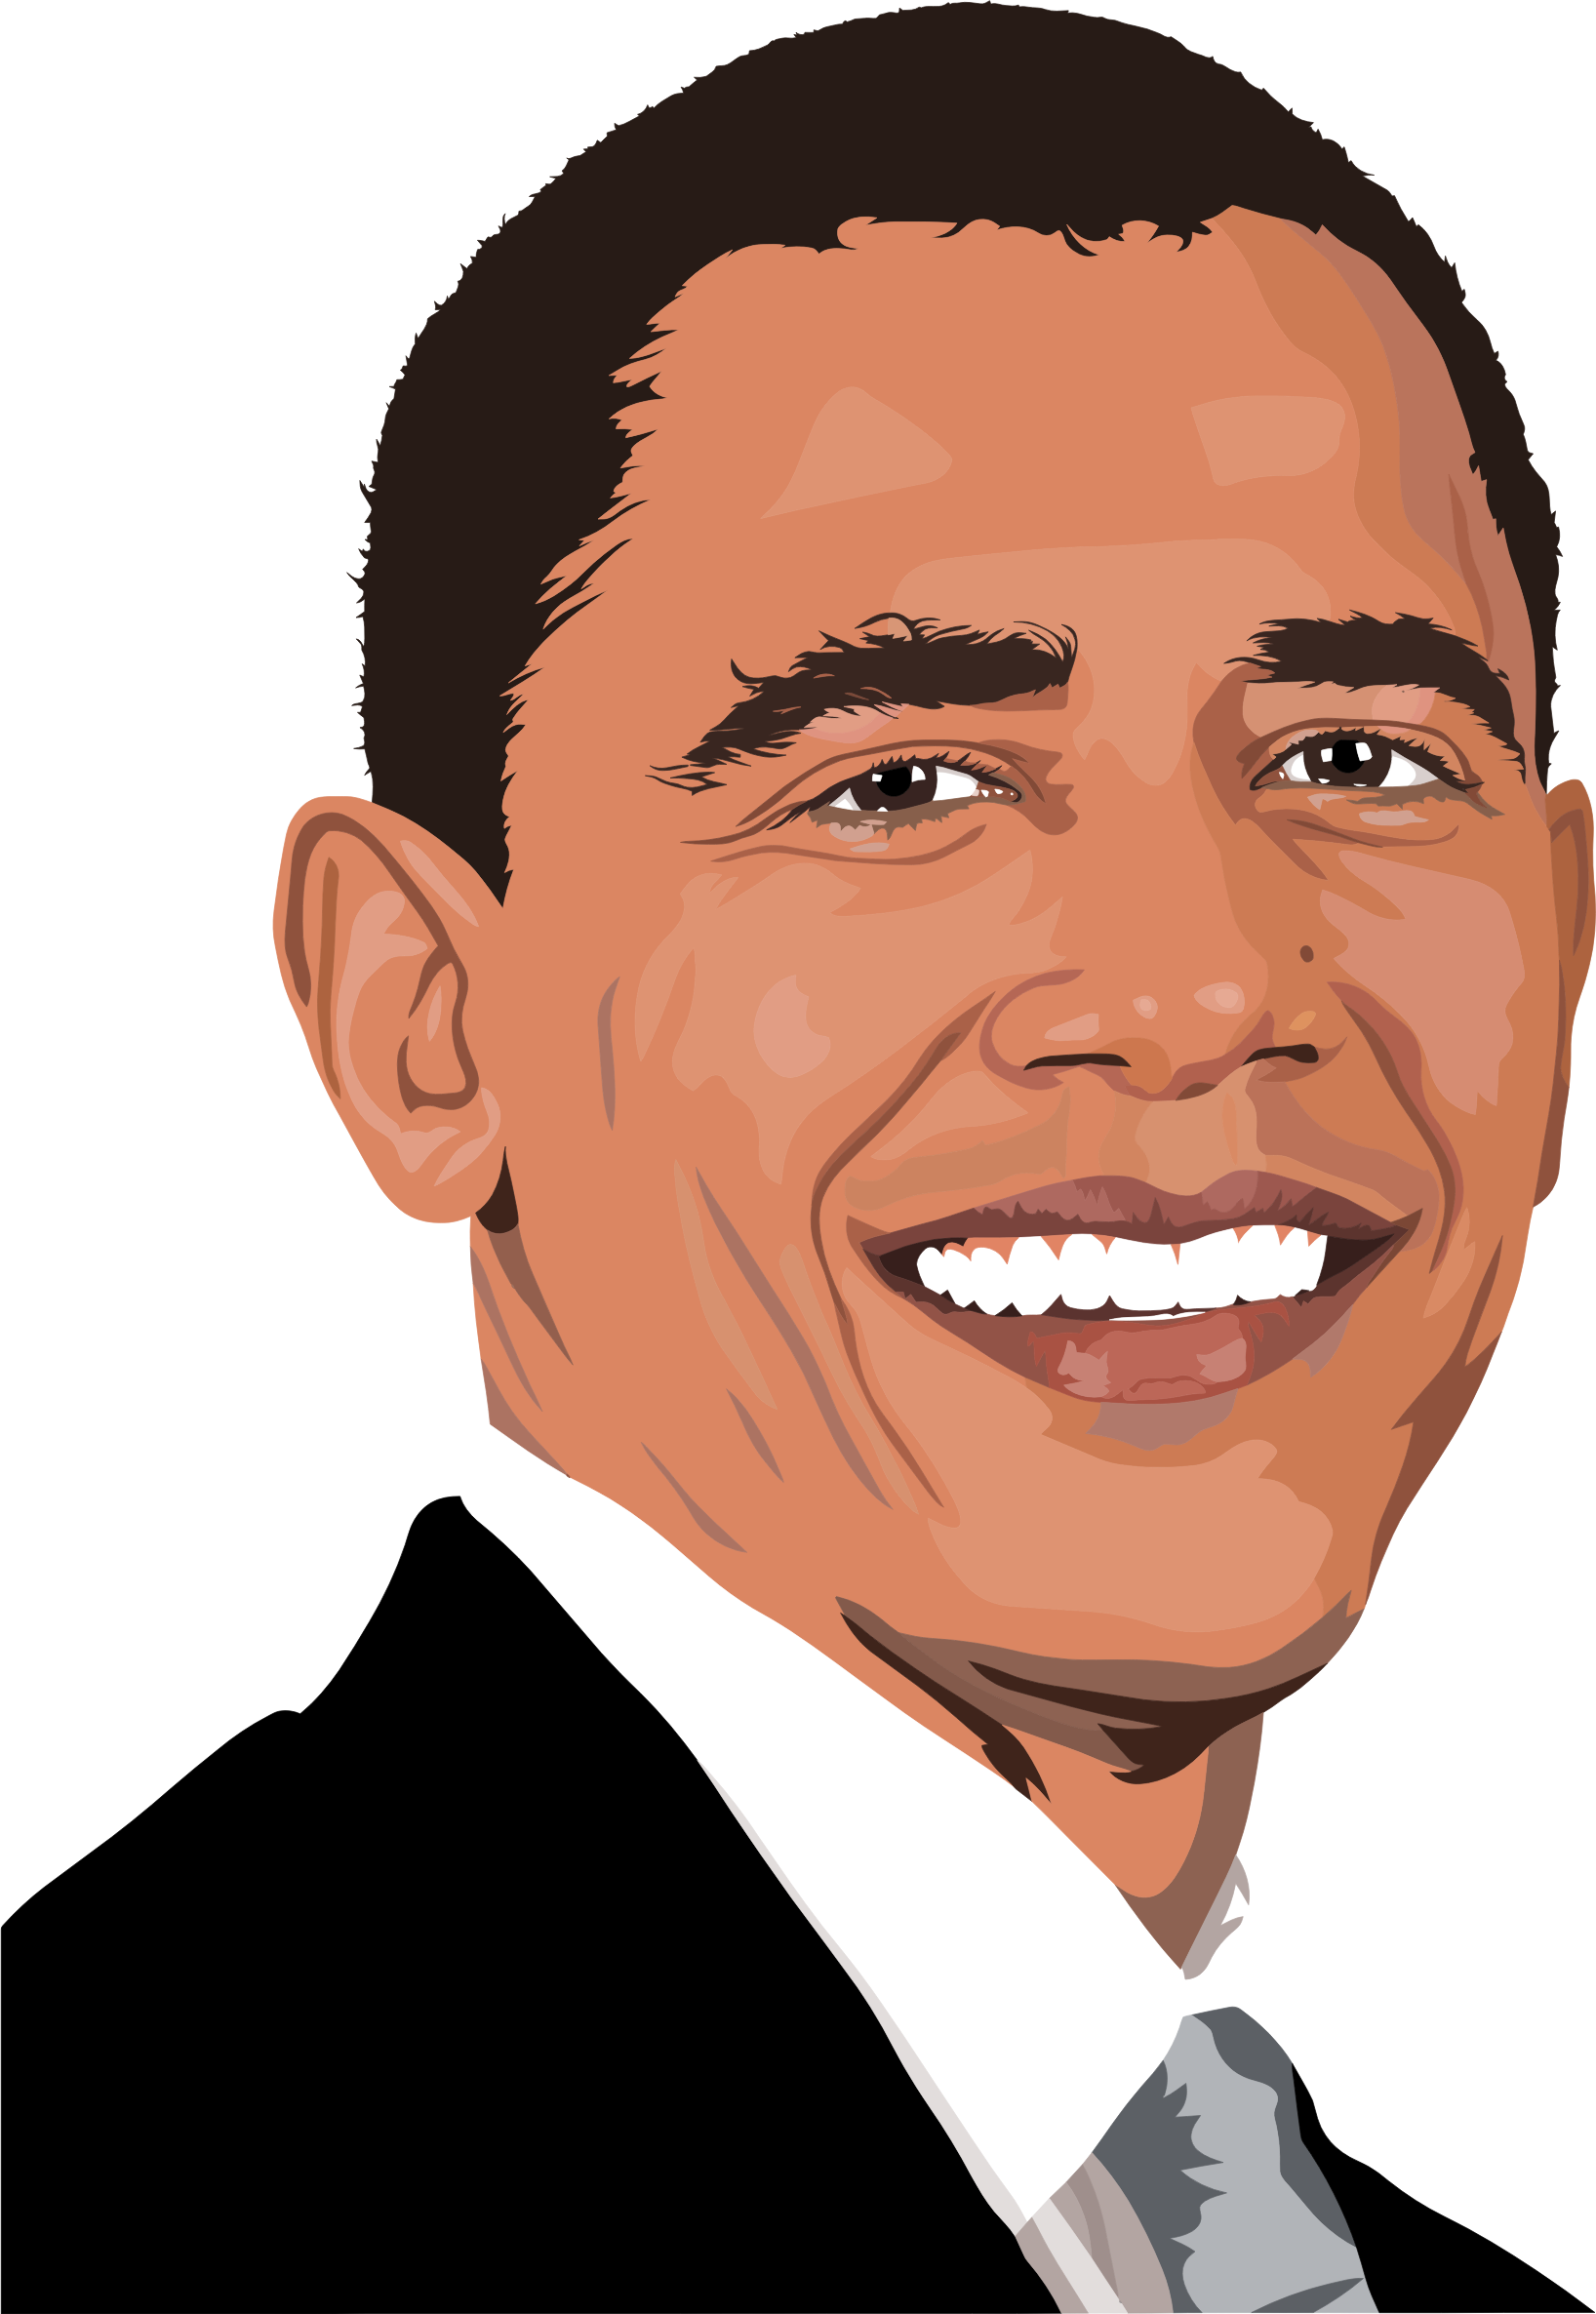 Obama crying png. Realistic barack portrait by